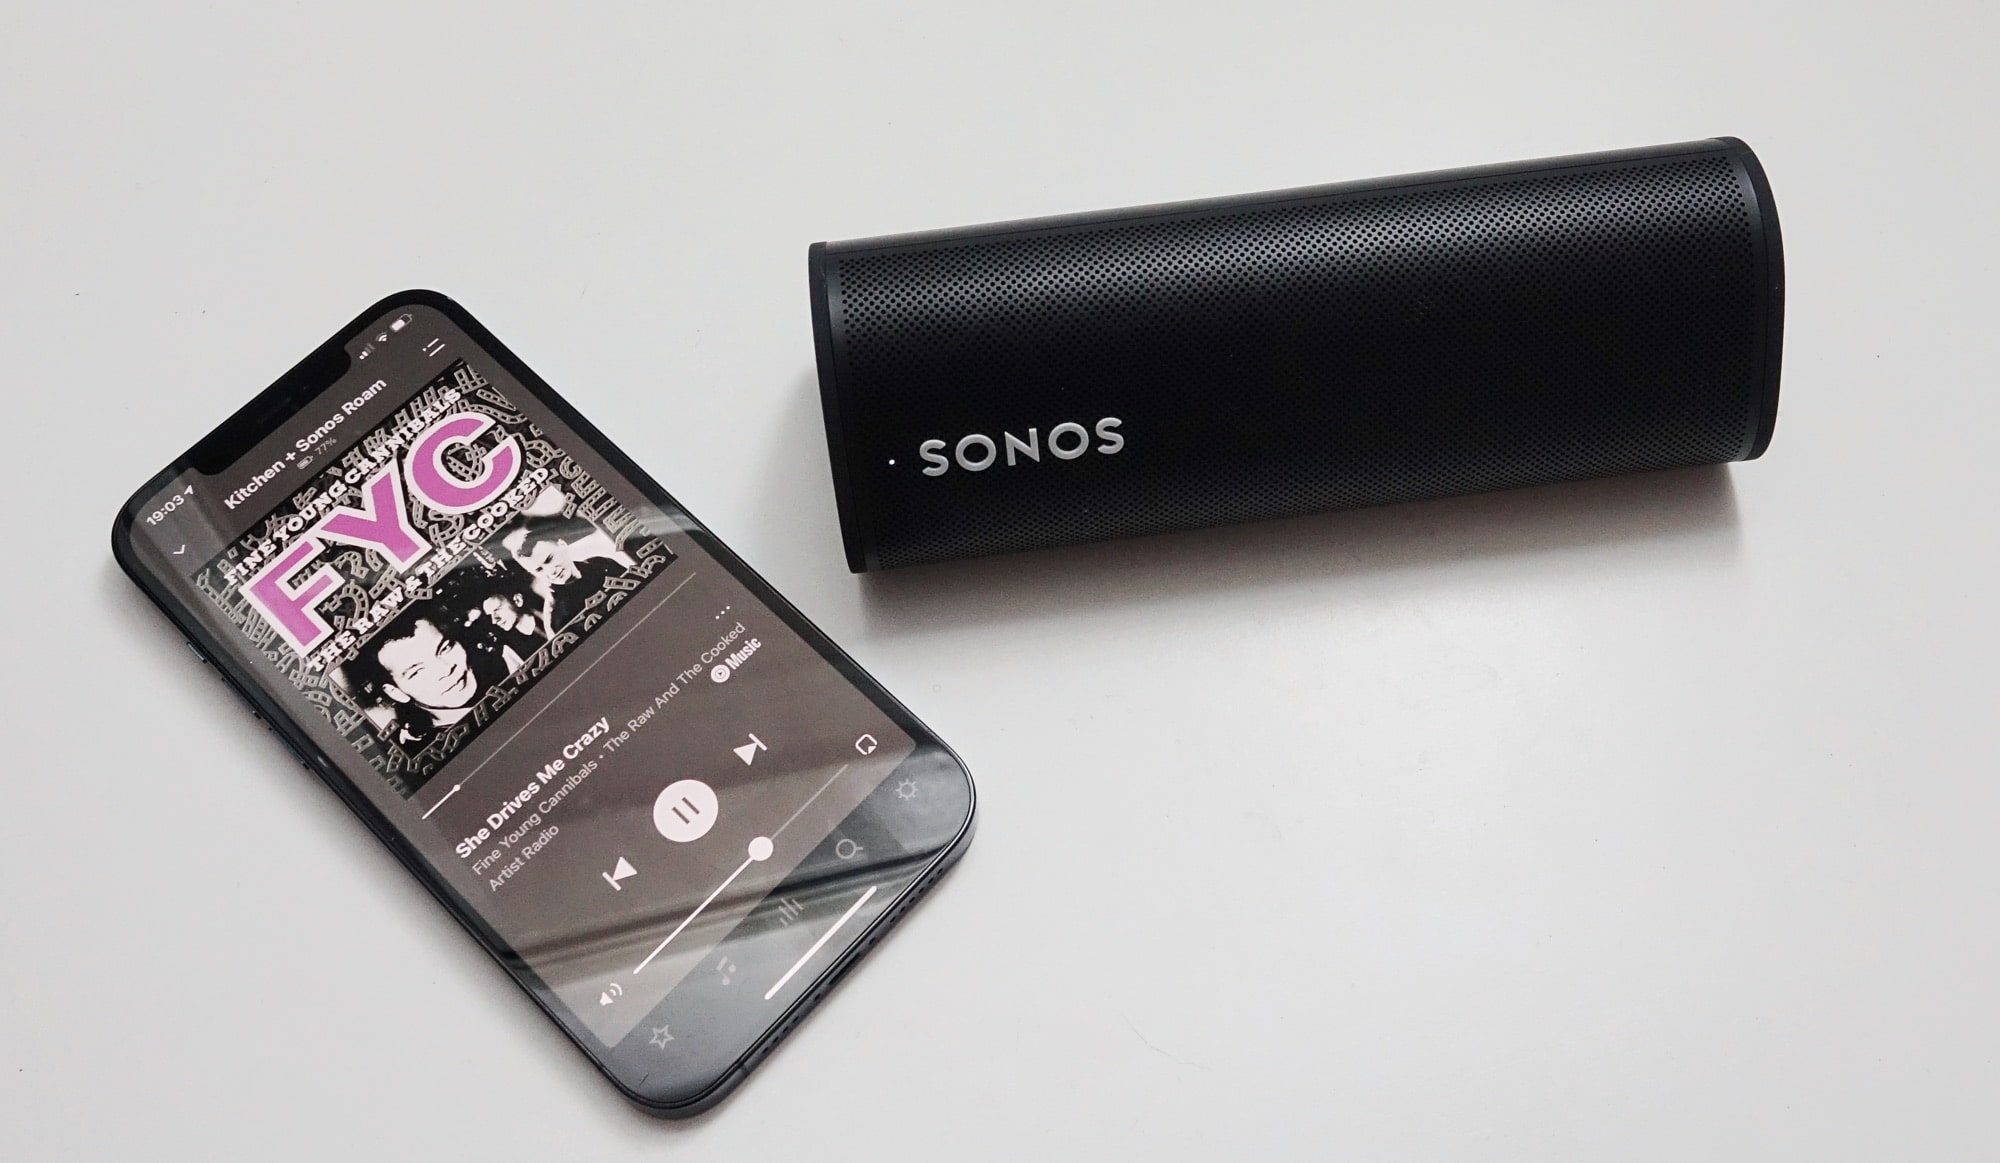 The Sonos Roam next to an iPhone 12 Pro Max.